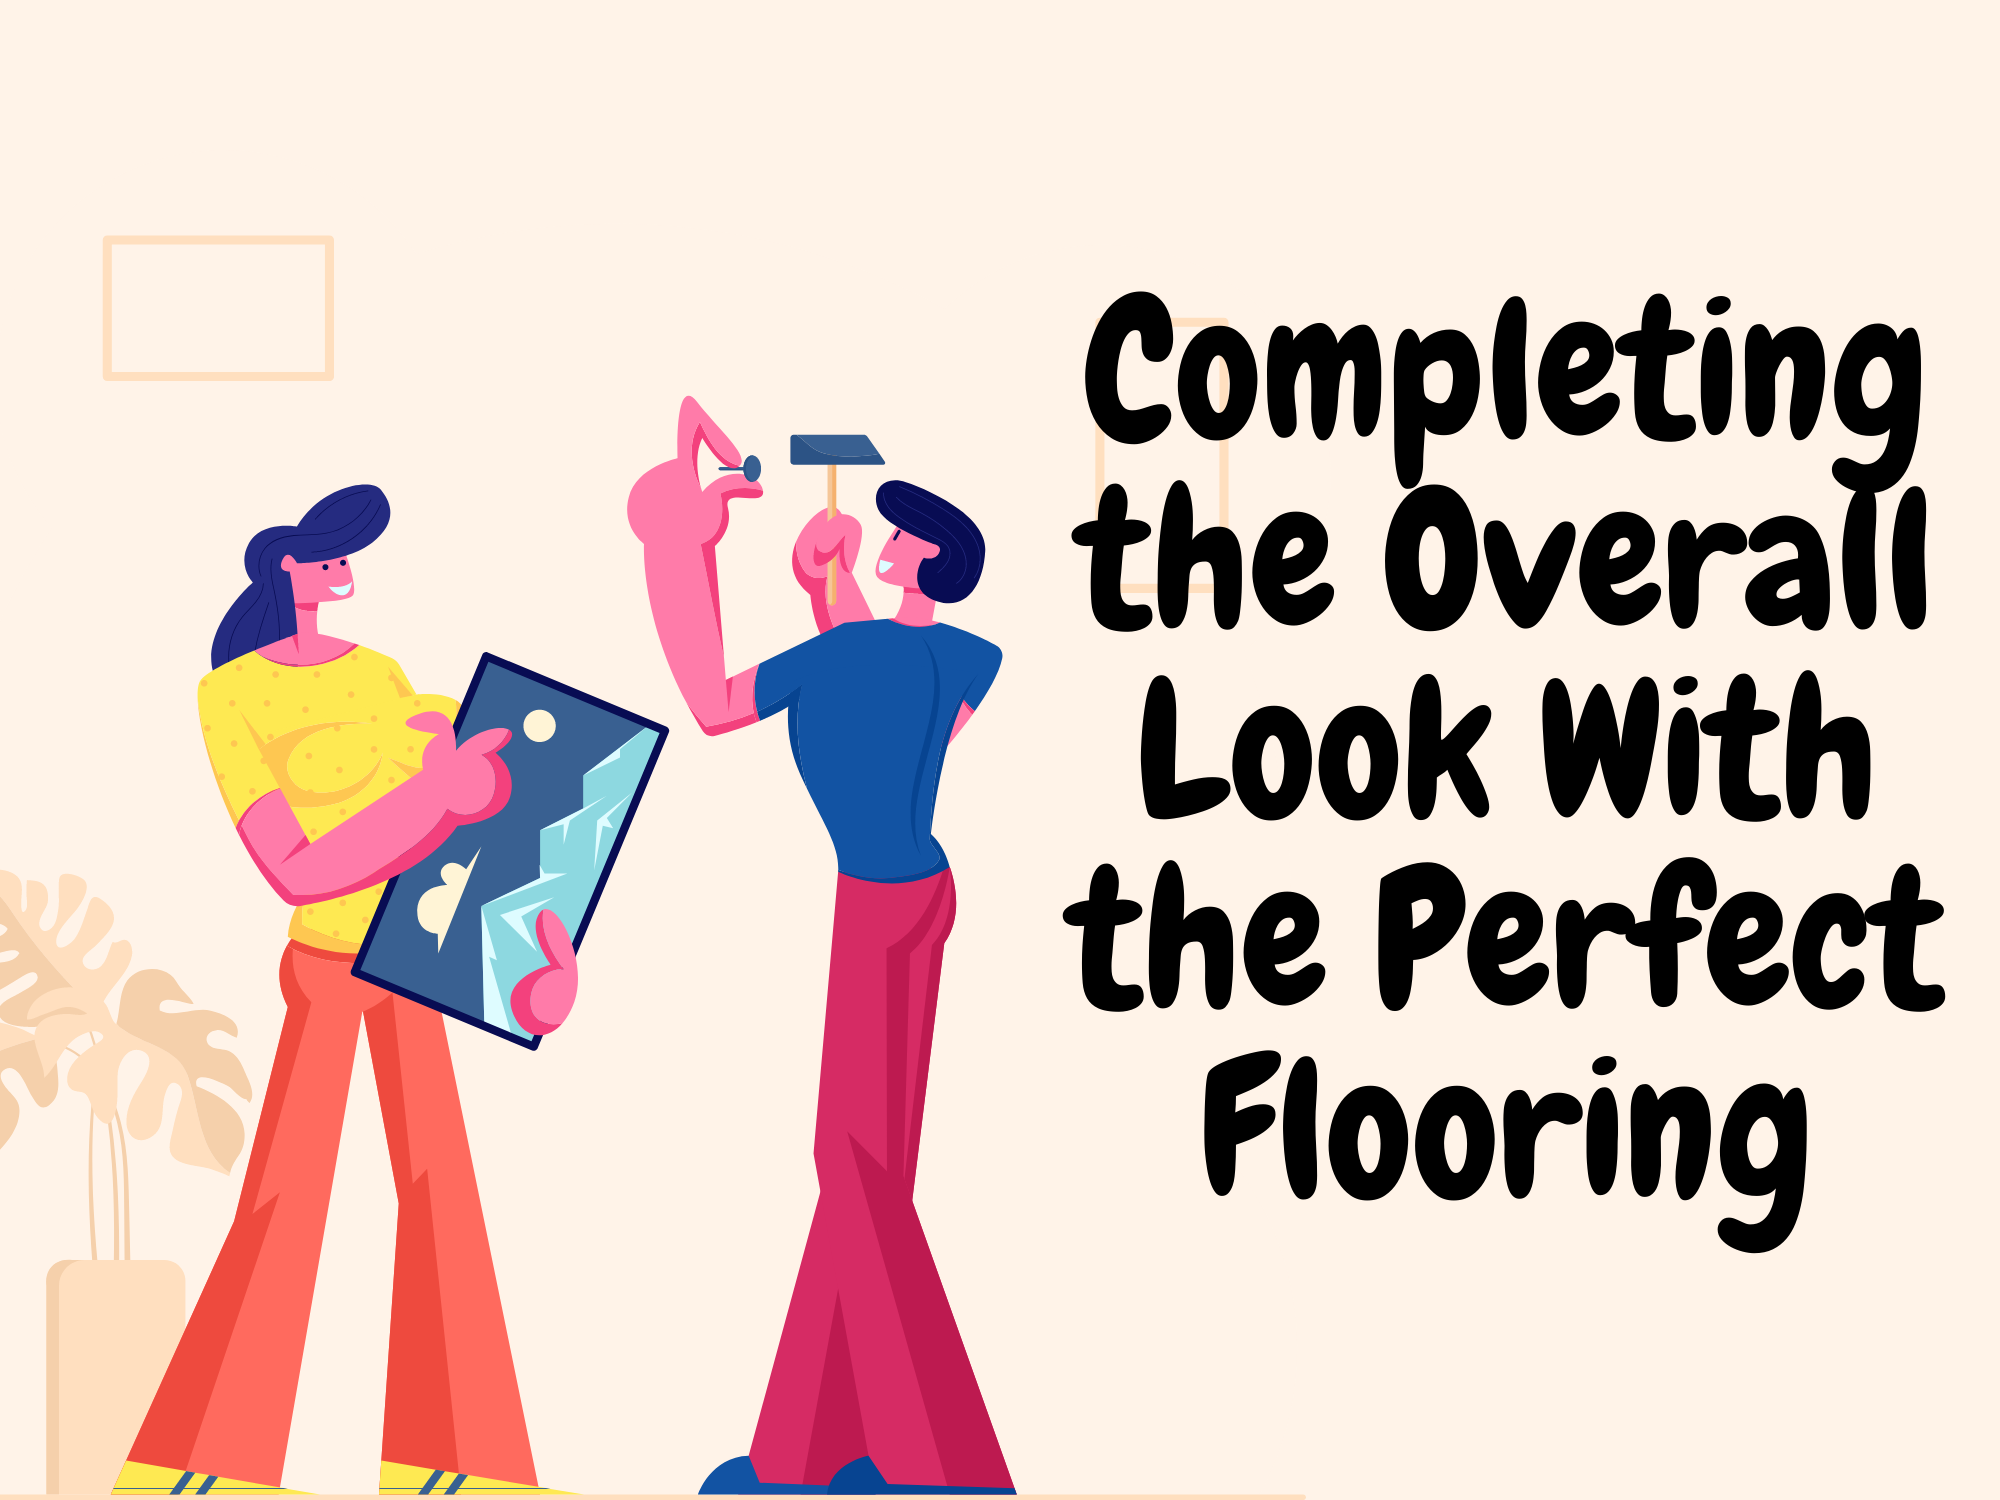 Completing-the-Overall-Look-With-the-Perfect-Flooring